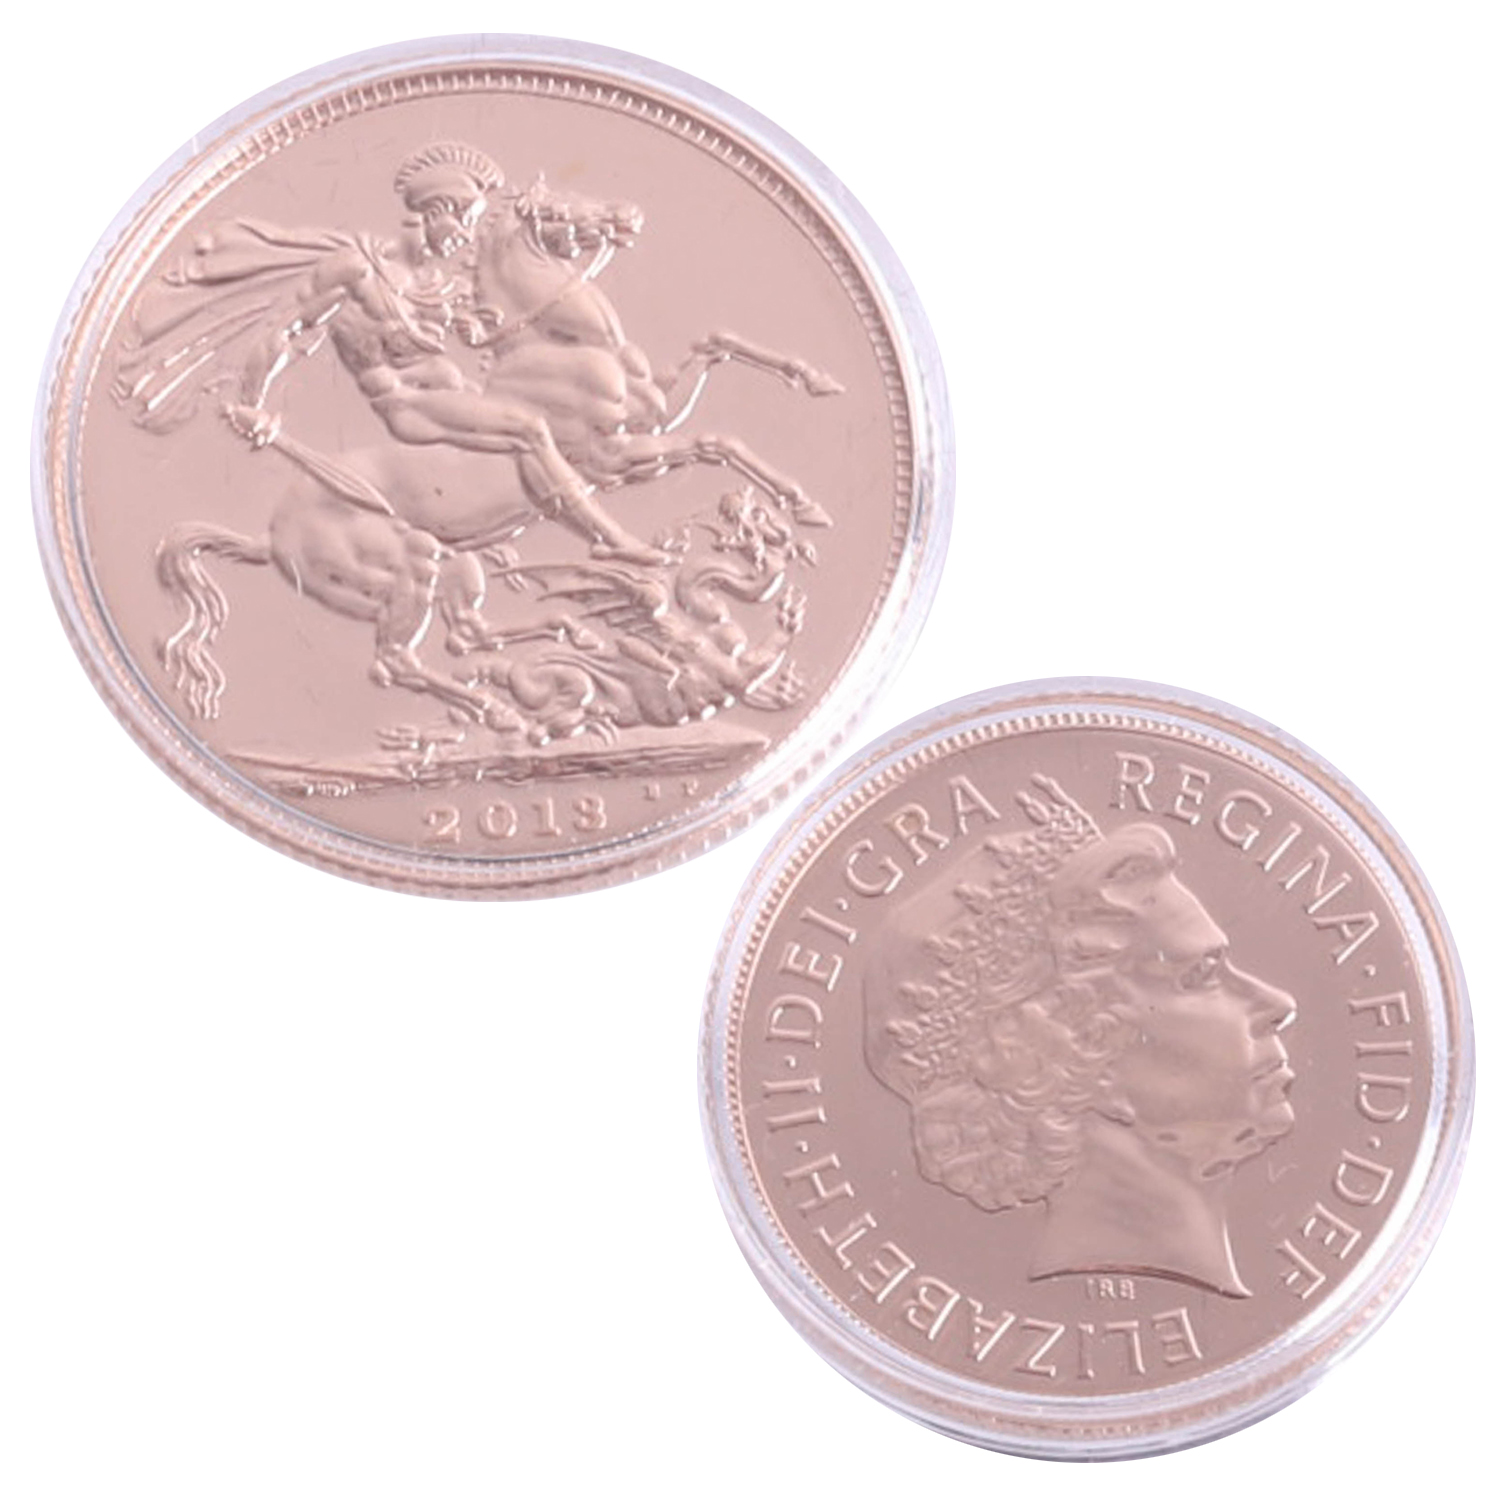 Lot 025 - Royal Mint, Queen's Coronation 60th Anniversary celebration gold sovereign struck 2nd June 2013,